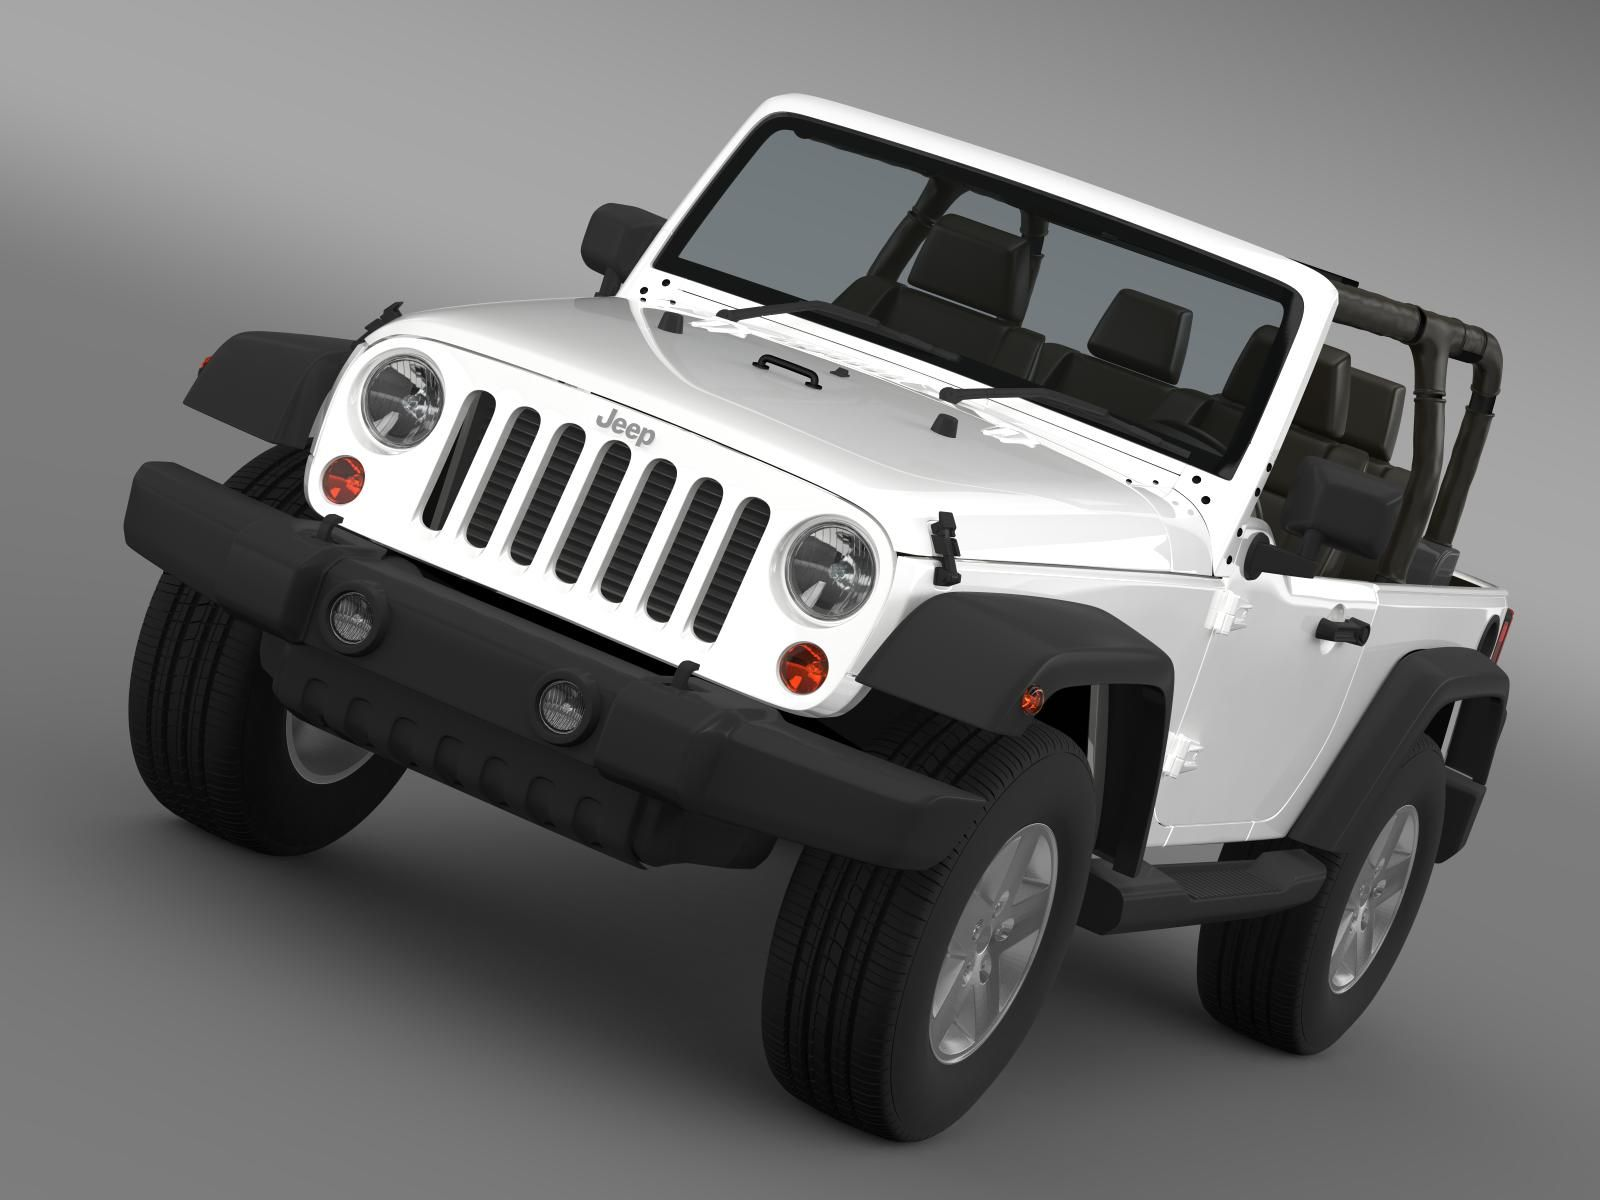 Jeep Wrangler Islander Edition 2010 3D Model (With images